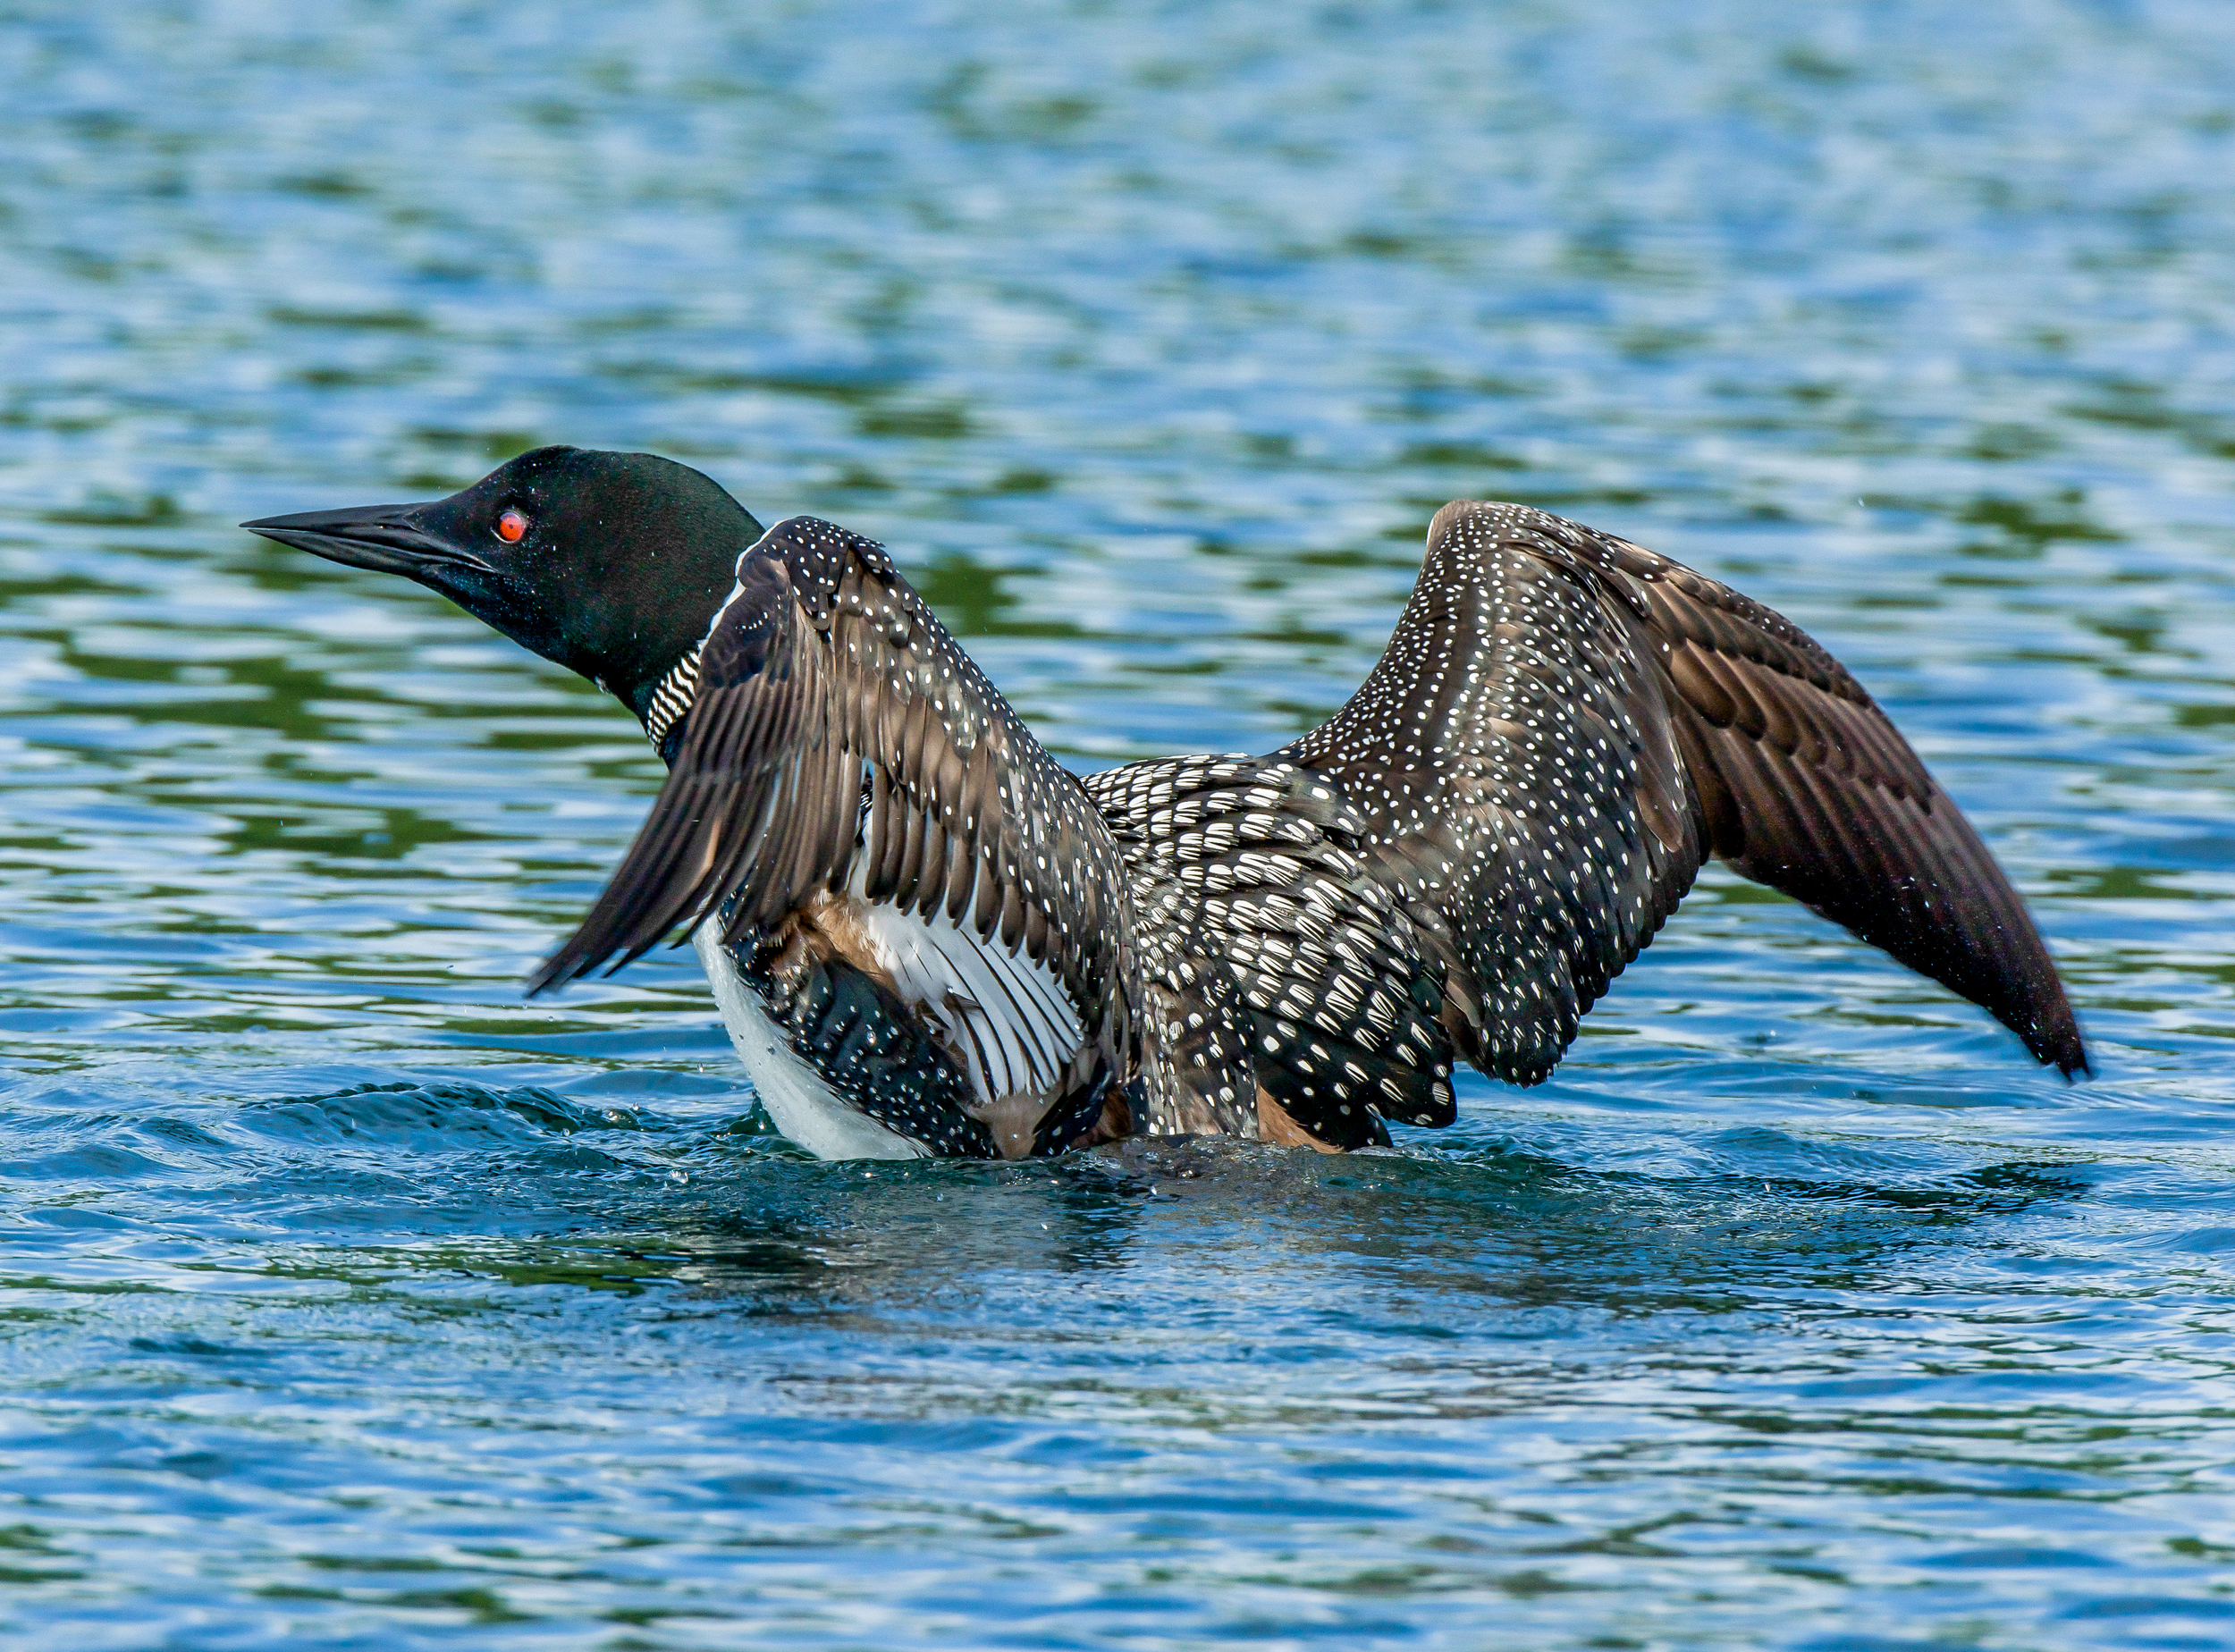 Just like the young ones. This also helps them realign their feathers after preening and diving. 7/29/15